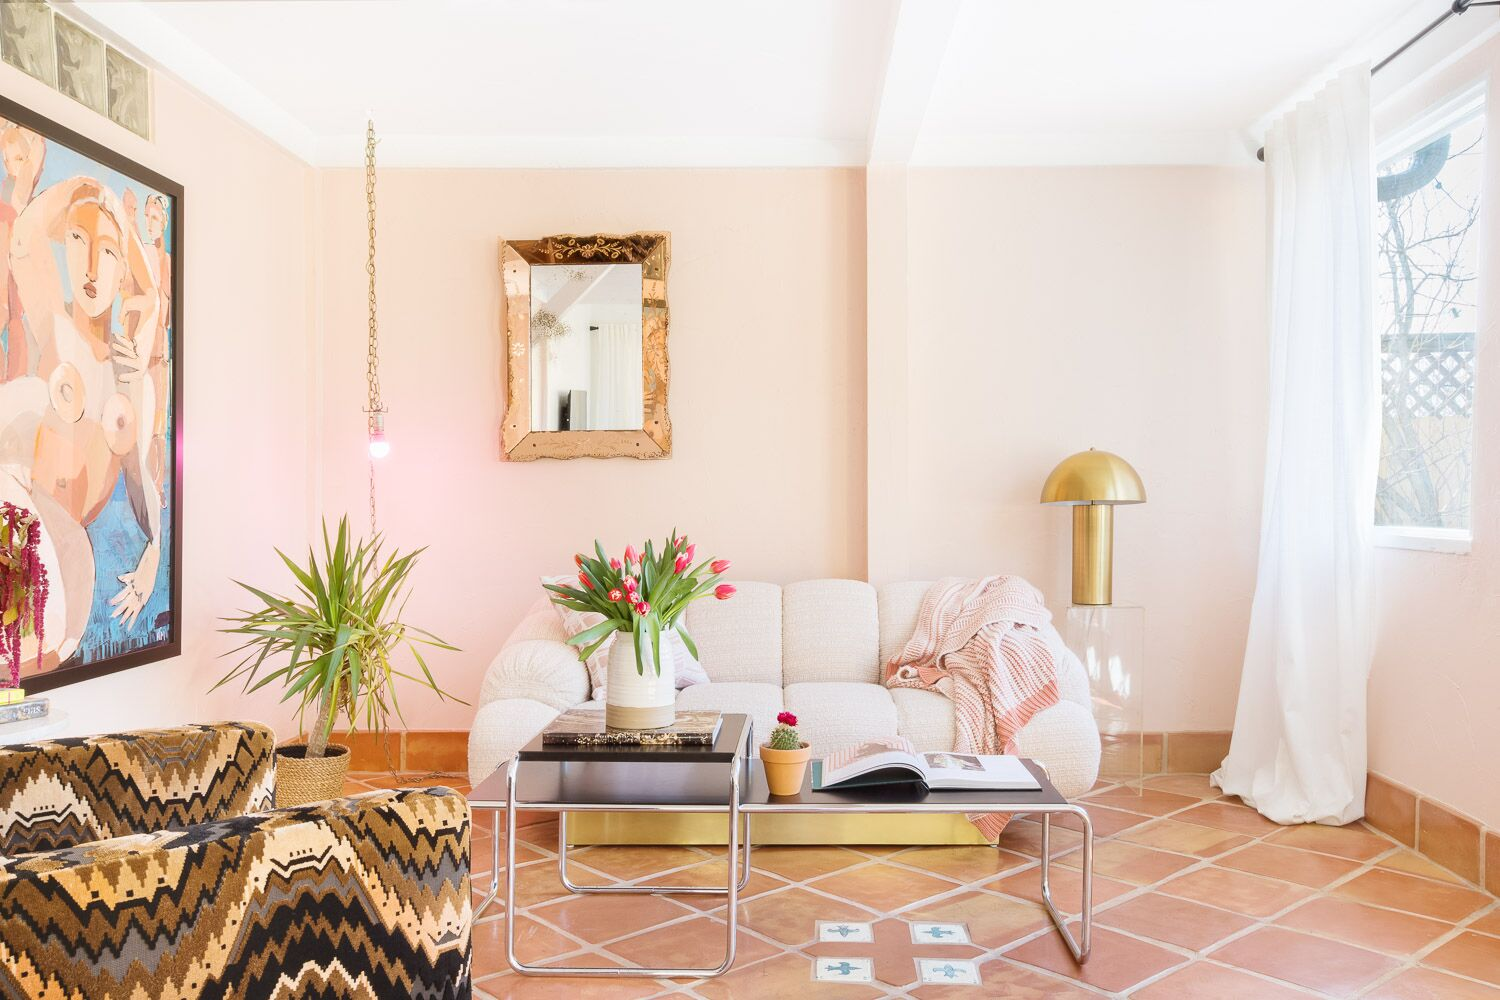 Photography + Styling by Alyssa Rosenheck for My Domaine